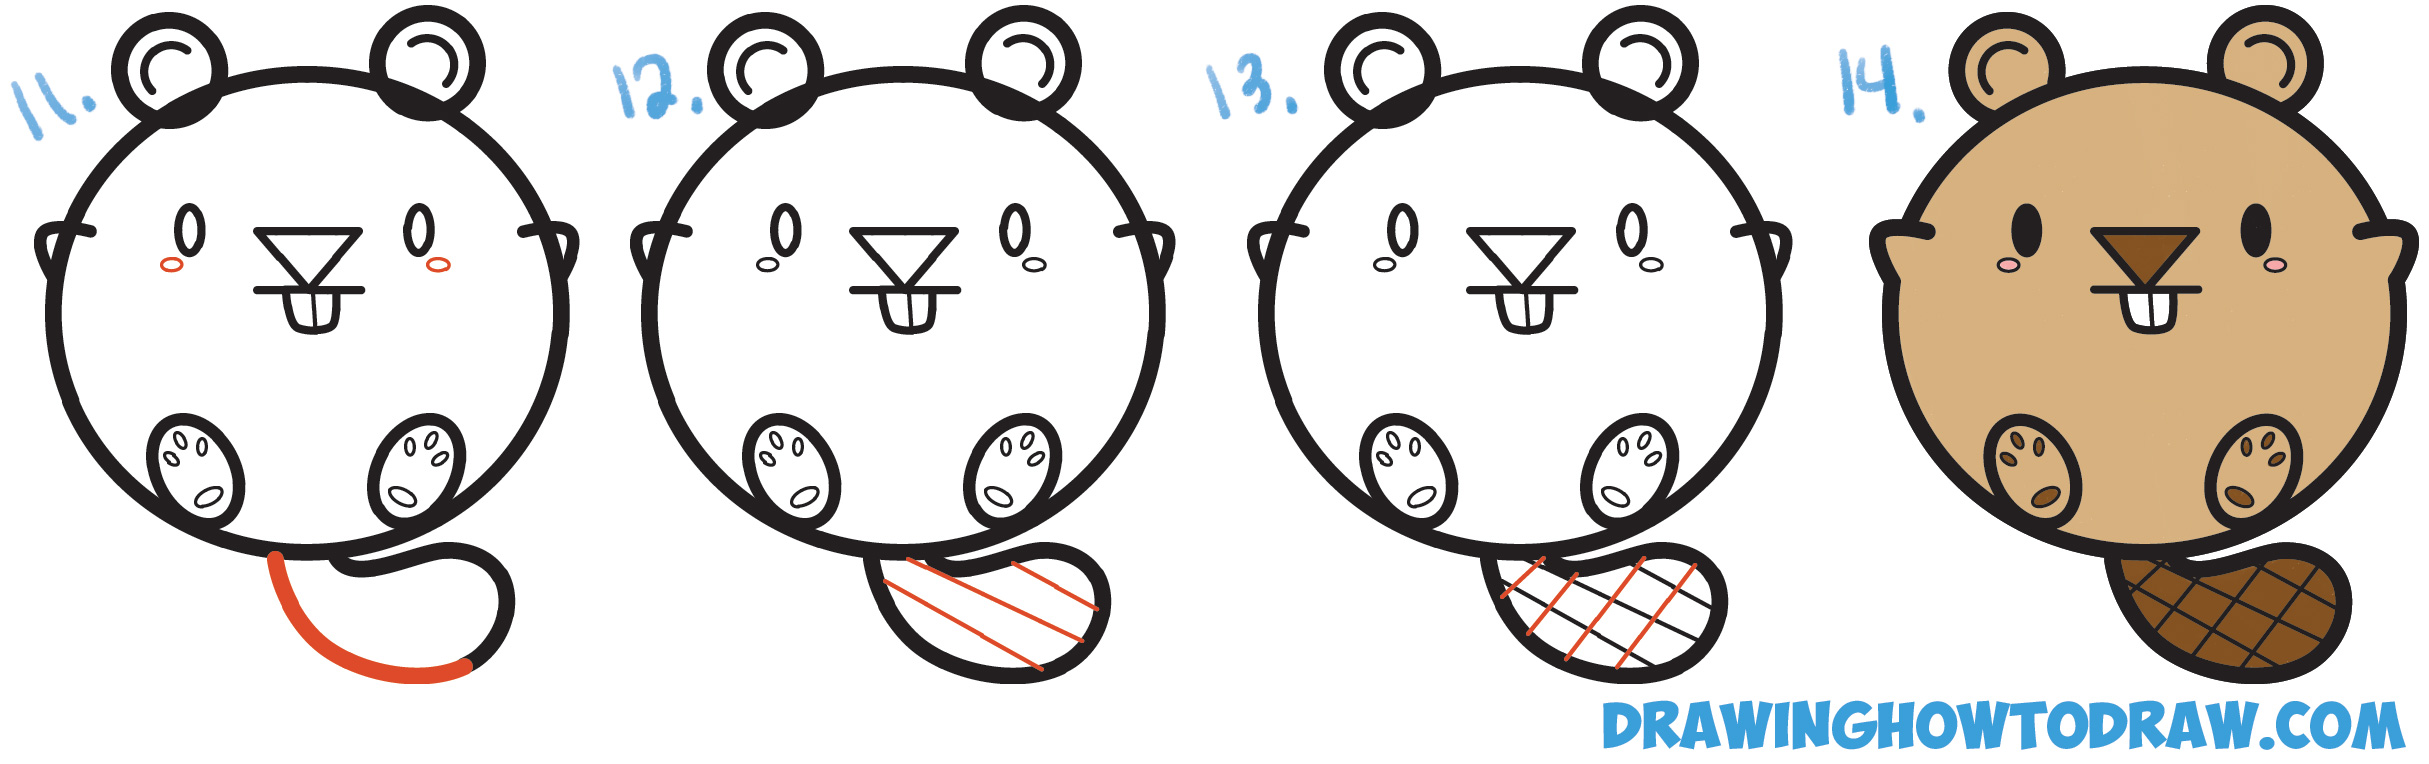 Learn How to Draw a Cute Cartoon Beaver with Letters Easy ...